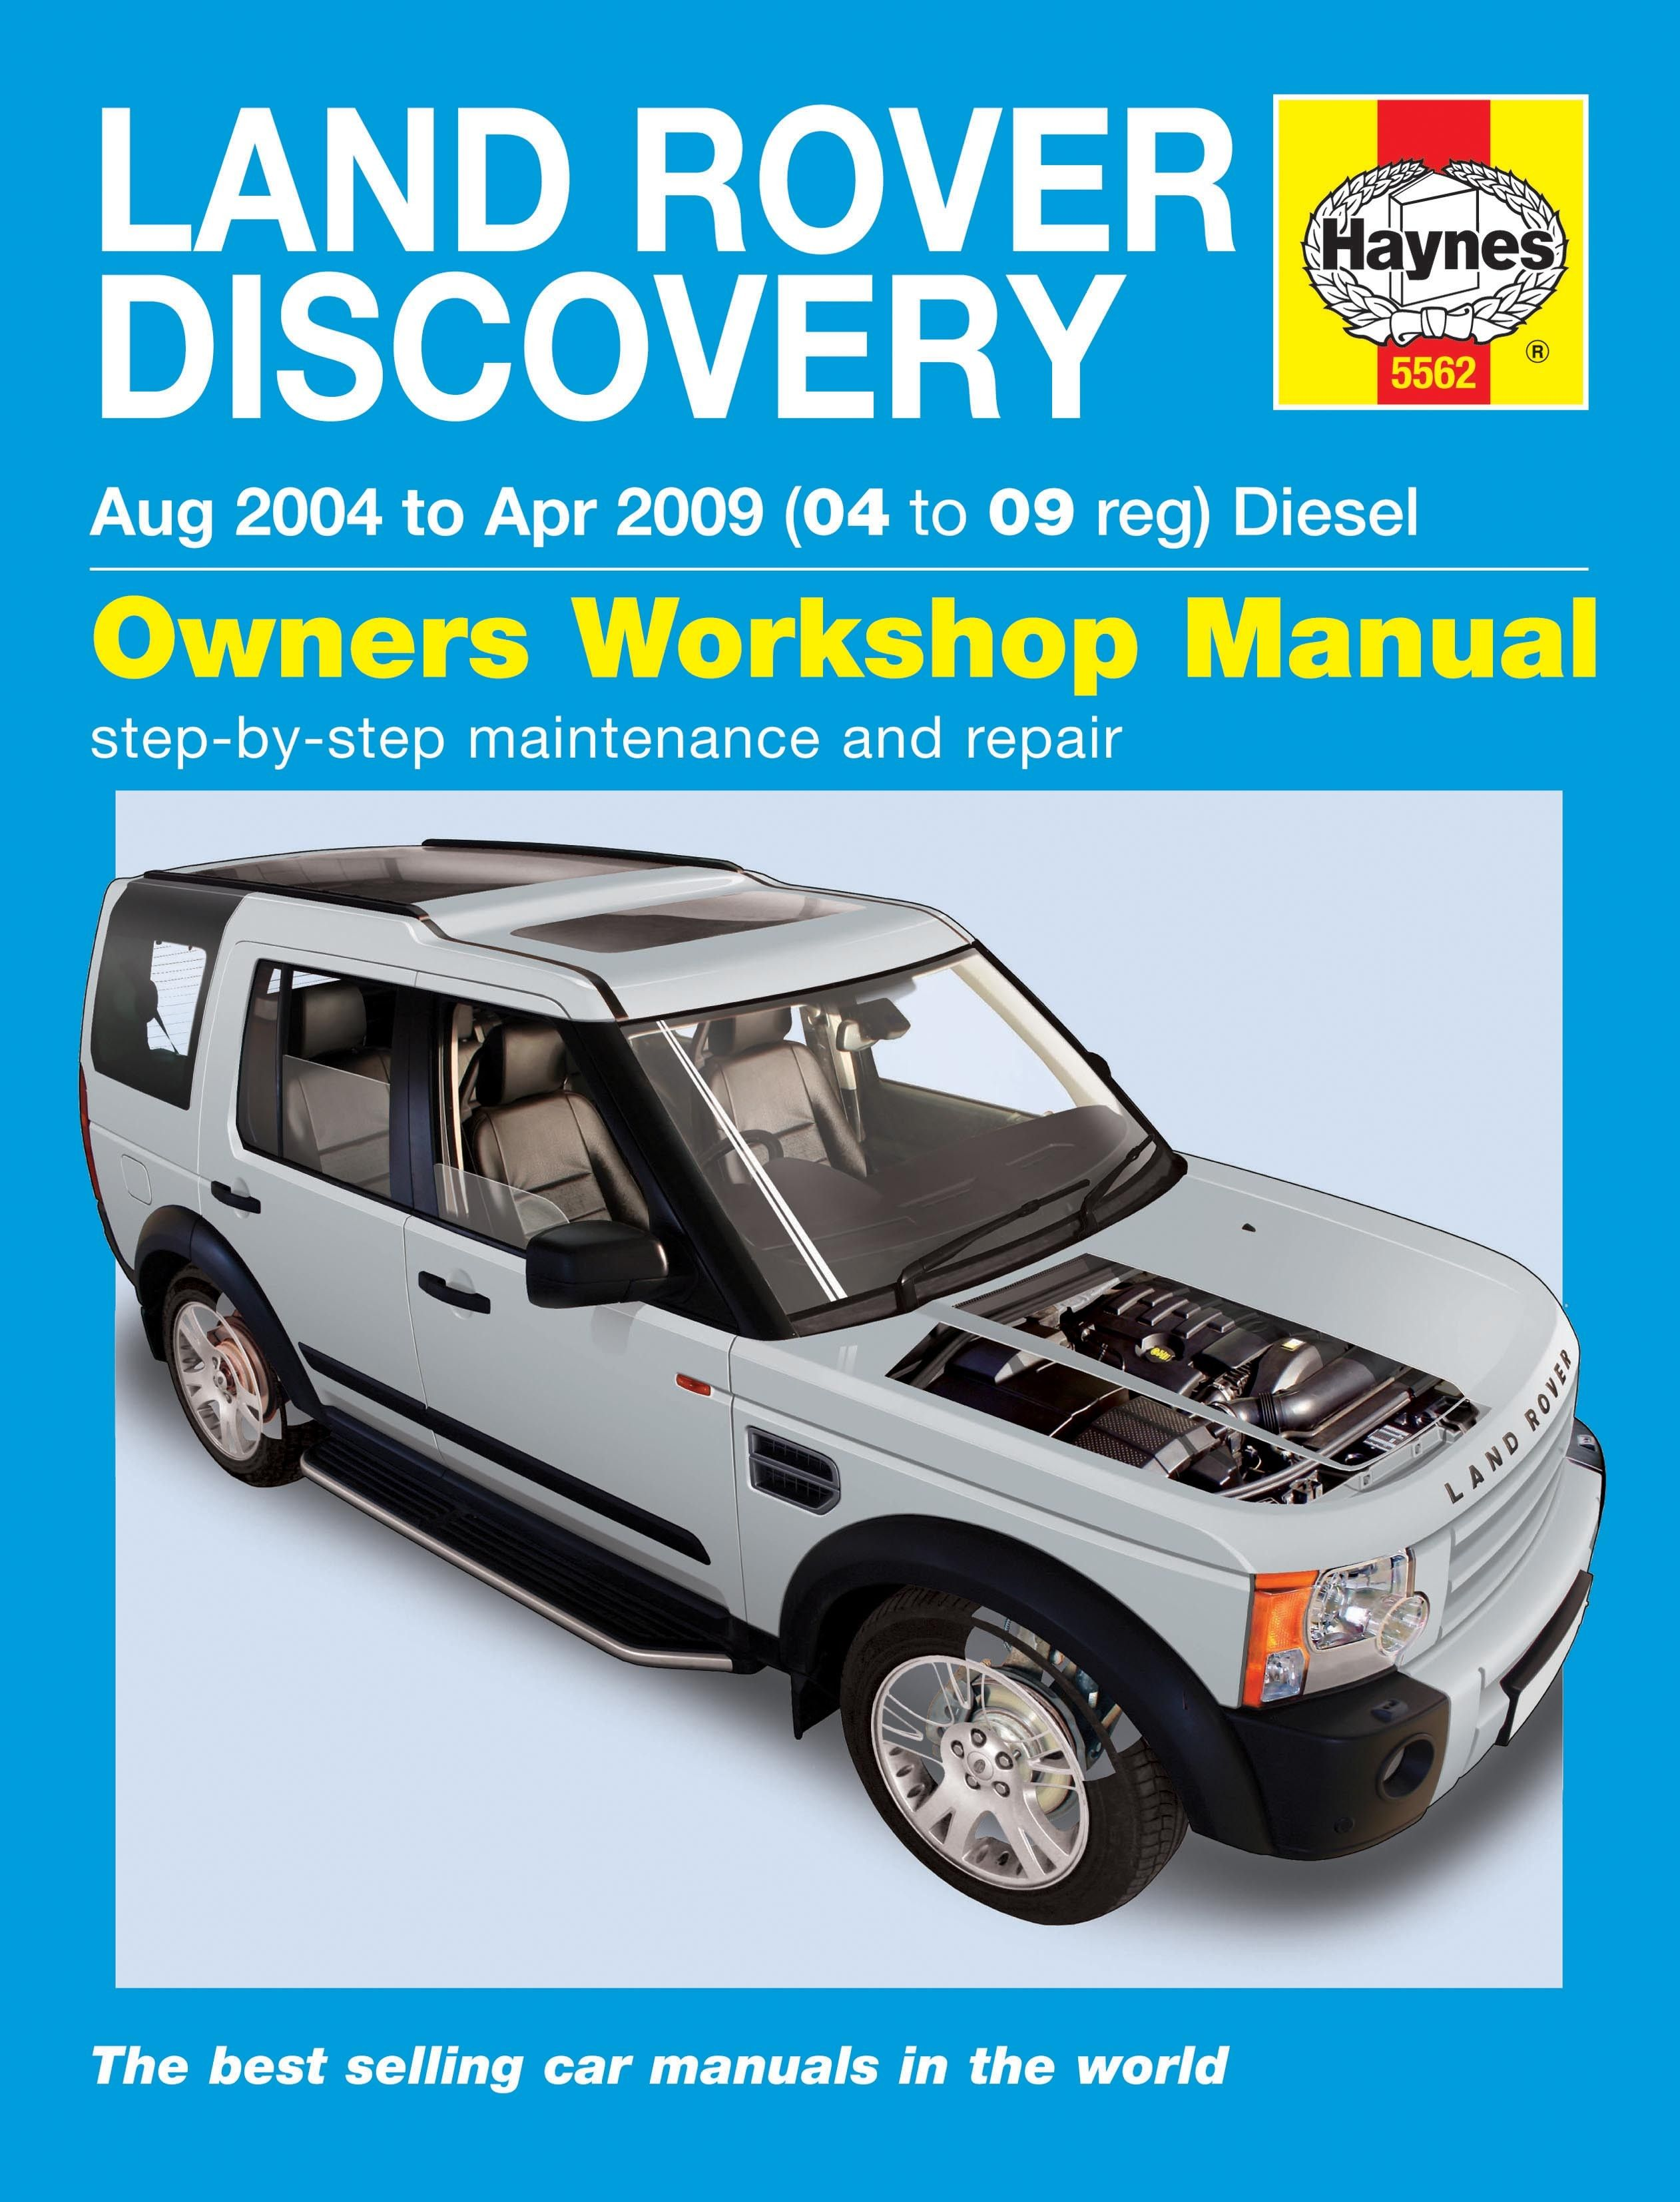 Land rover discovery 3 инструкция